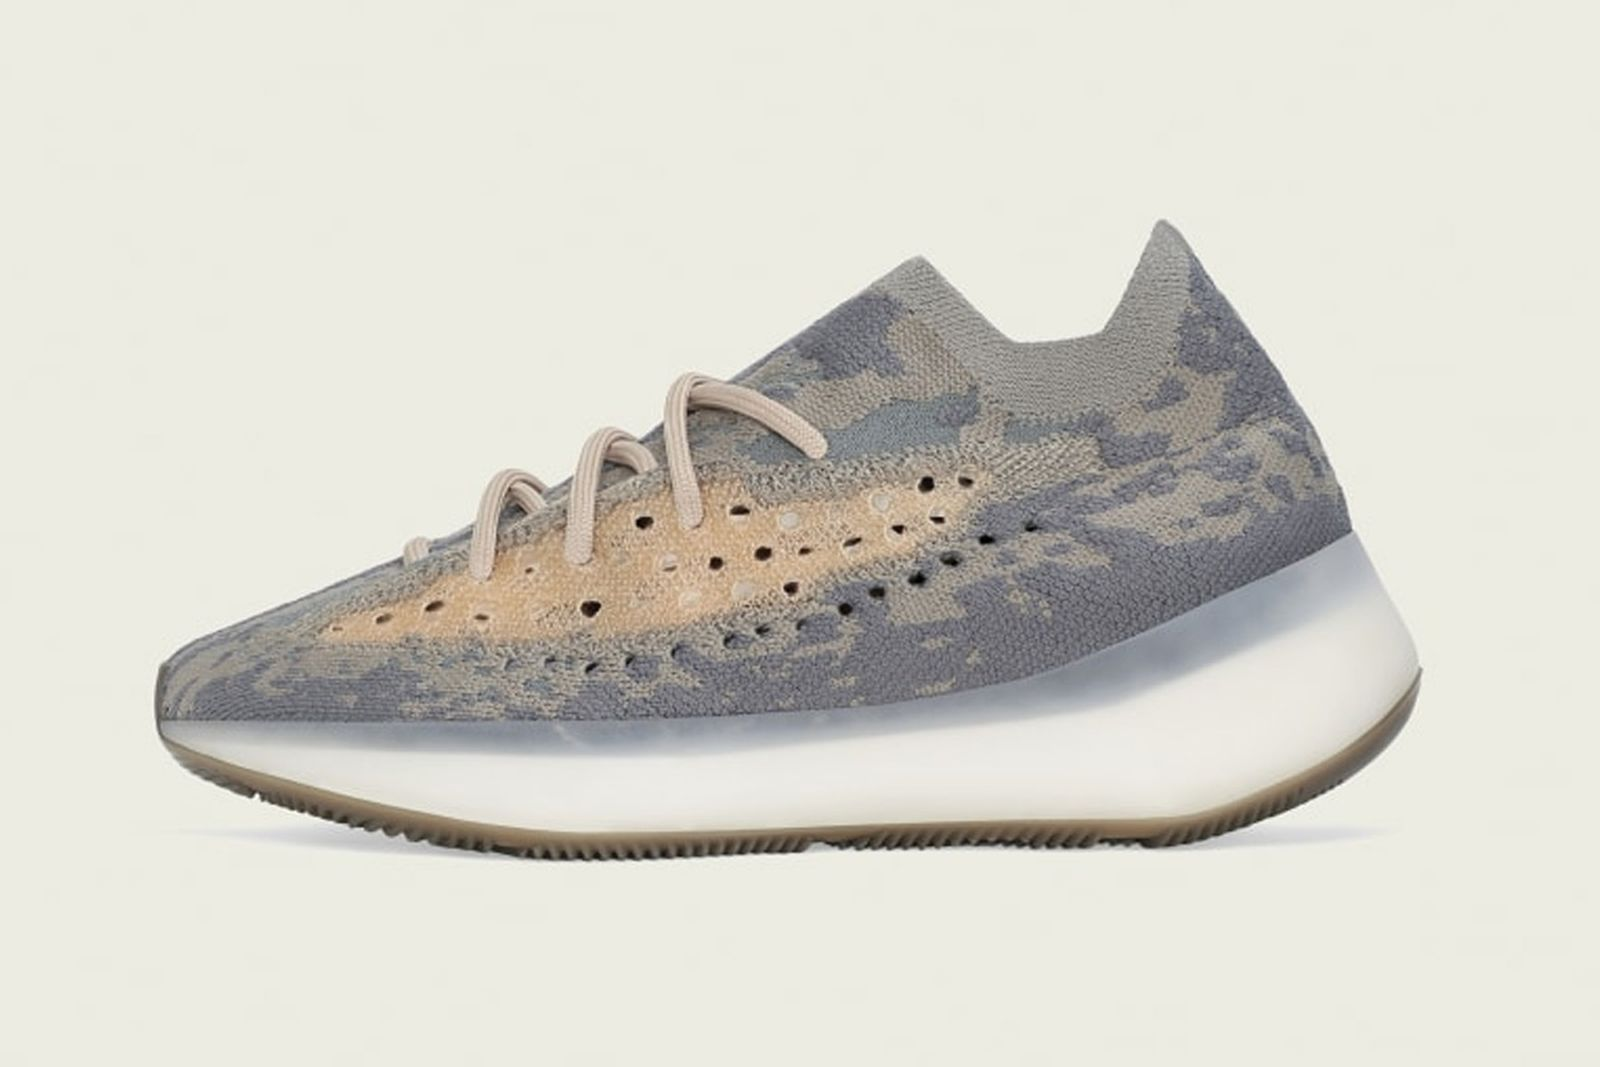 adidas-yeezy-boost-380-mist-release-date-price-official-01